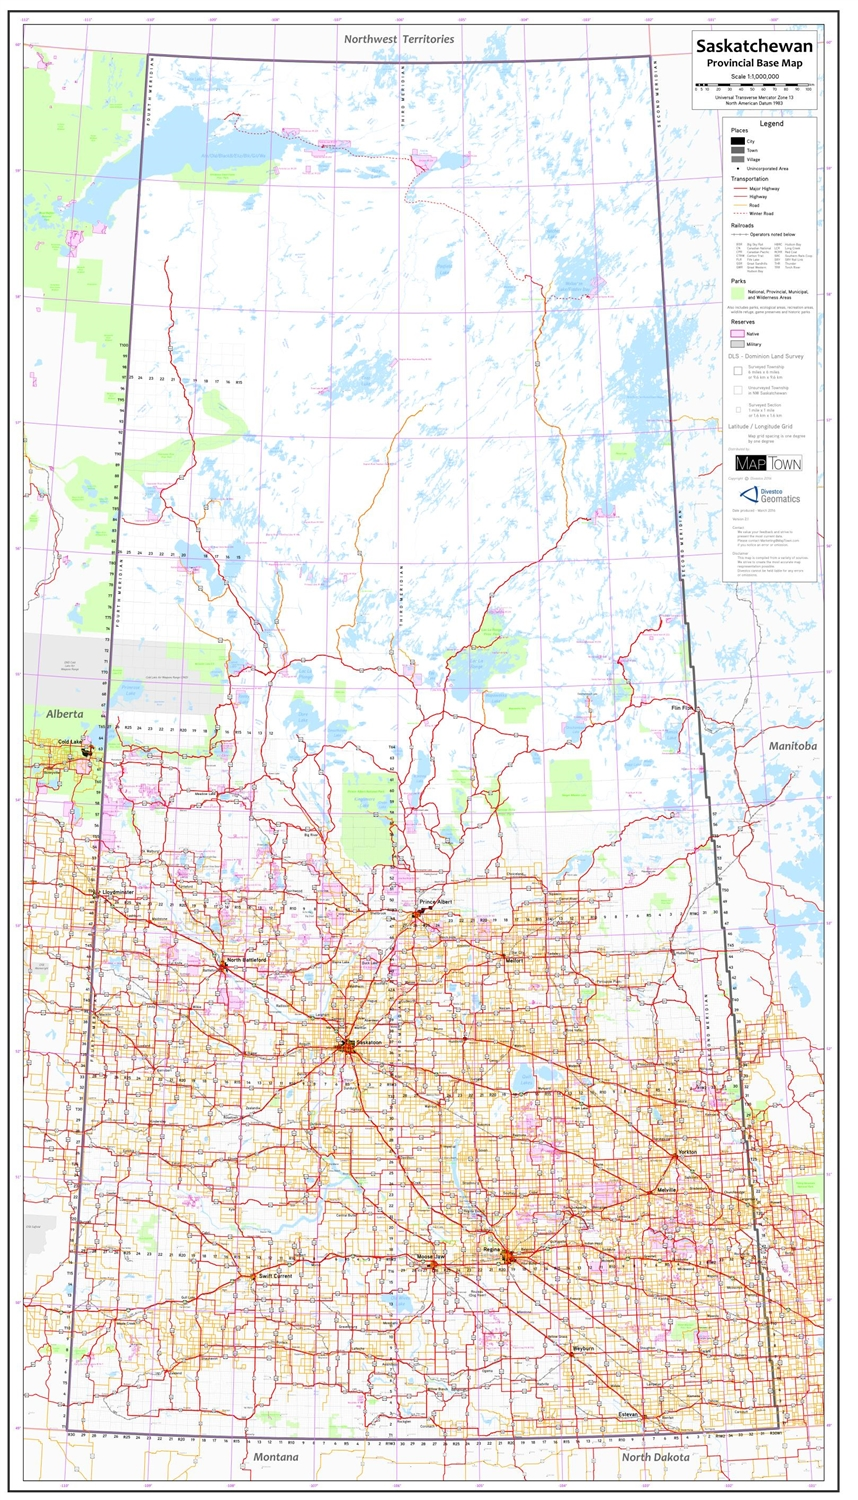 Saskatchewan Provincial Base Map 1 1 000 000